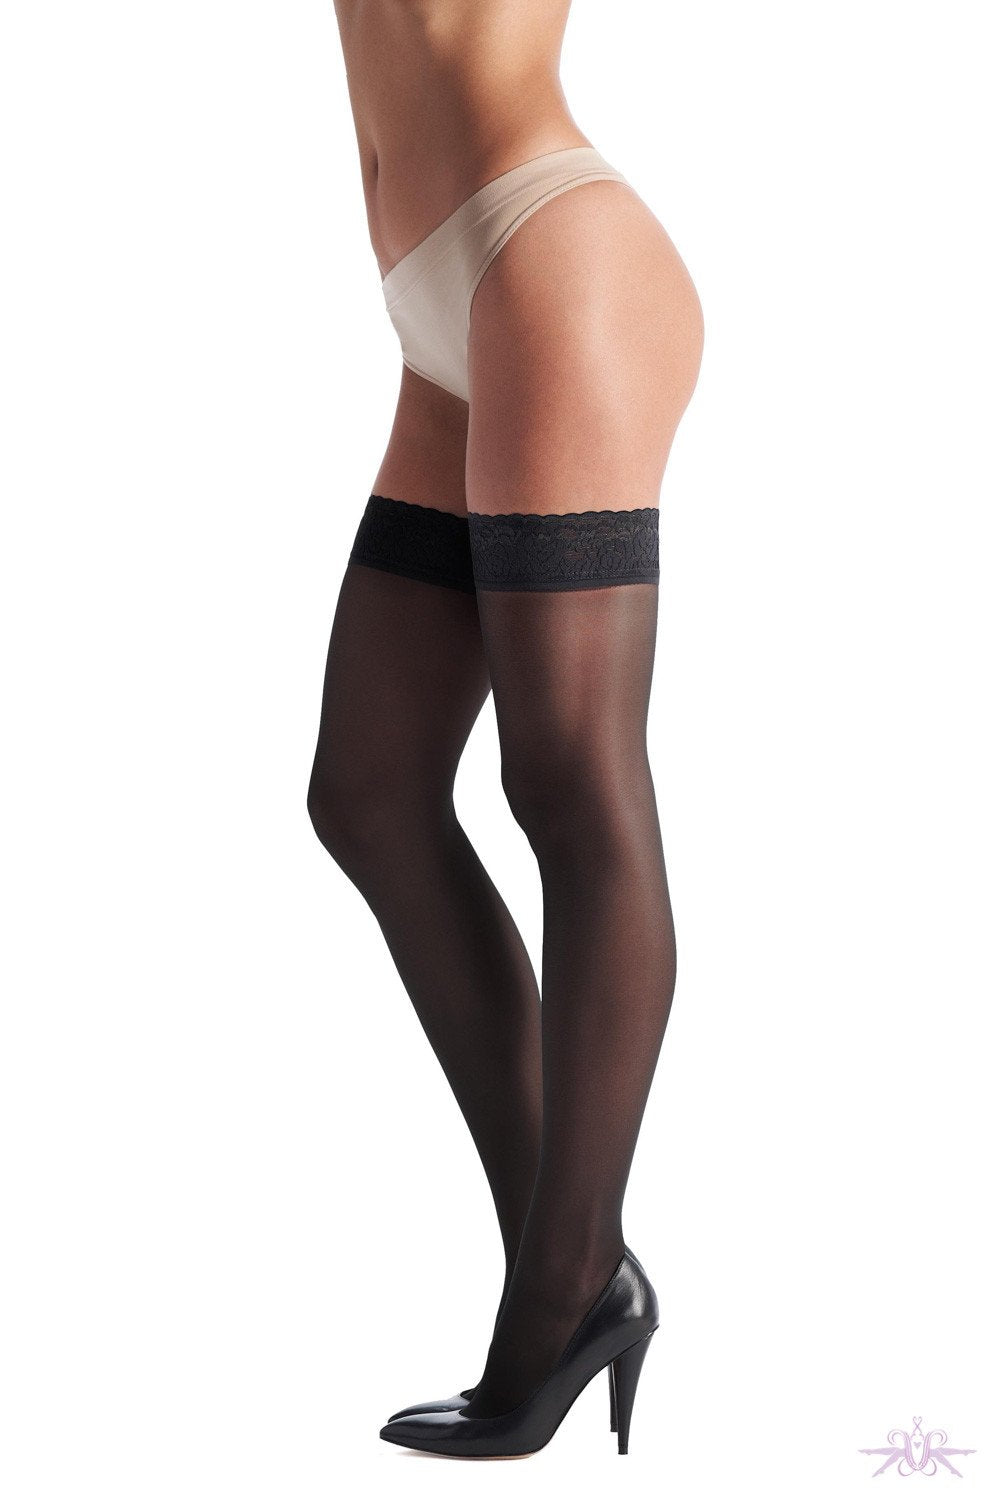 Oroblu Chic Up 30 Hold Ups - The Hosiery Box